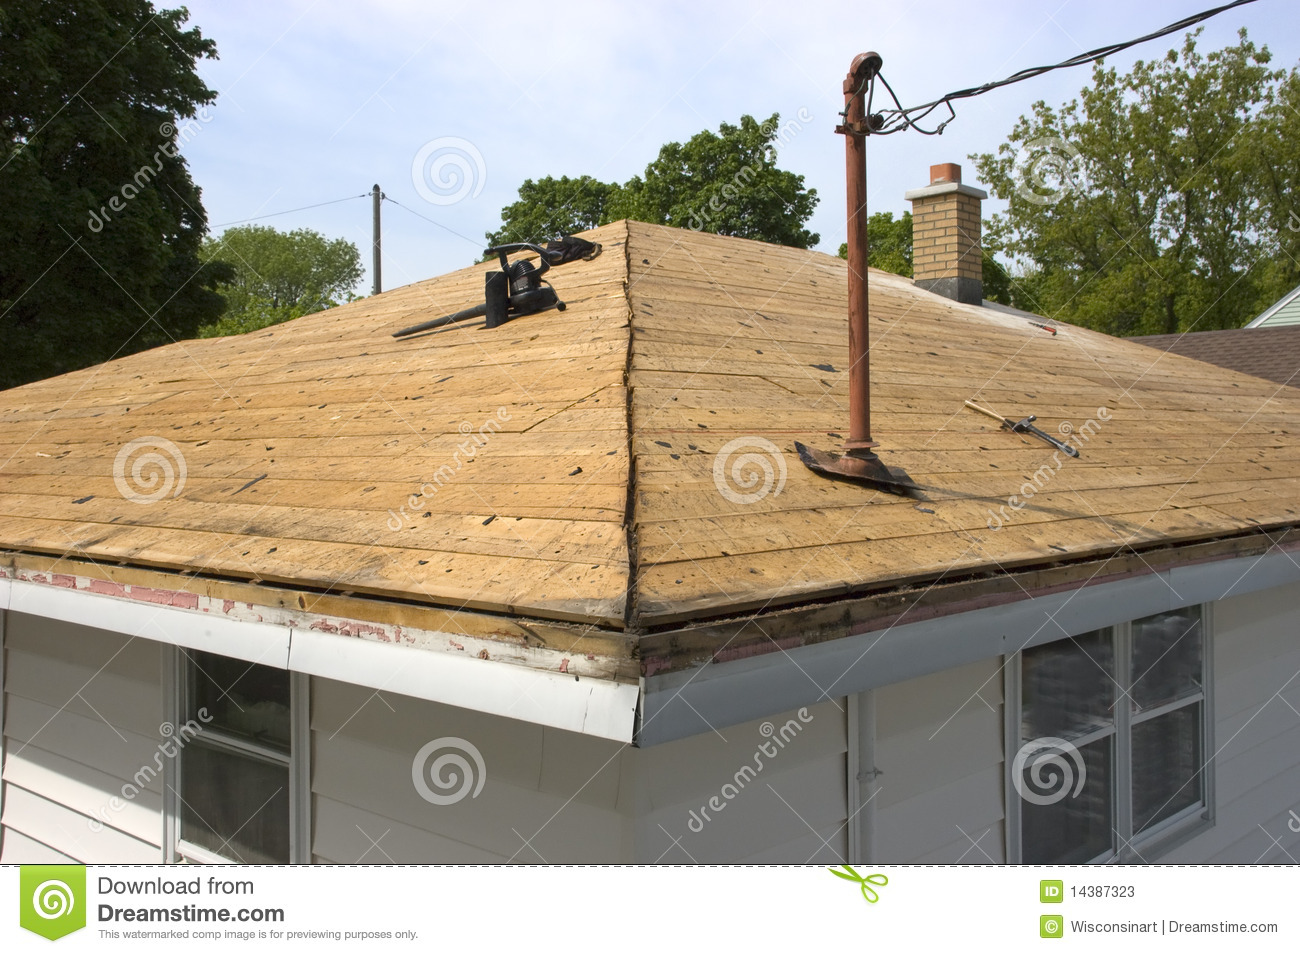 Roof Cleared Of Of Old Eaking House Shingles Stock Image